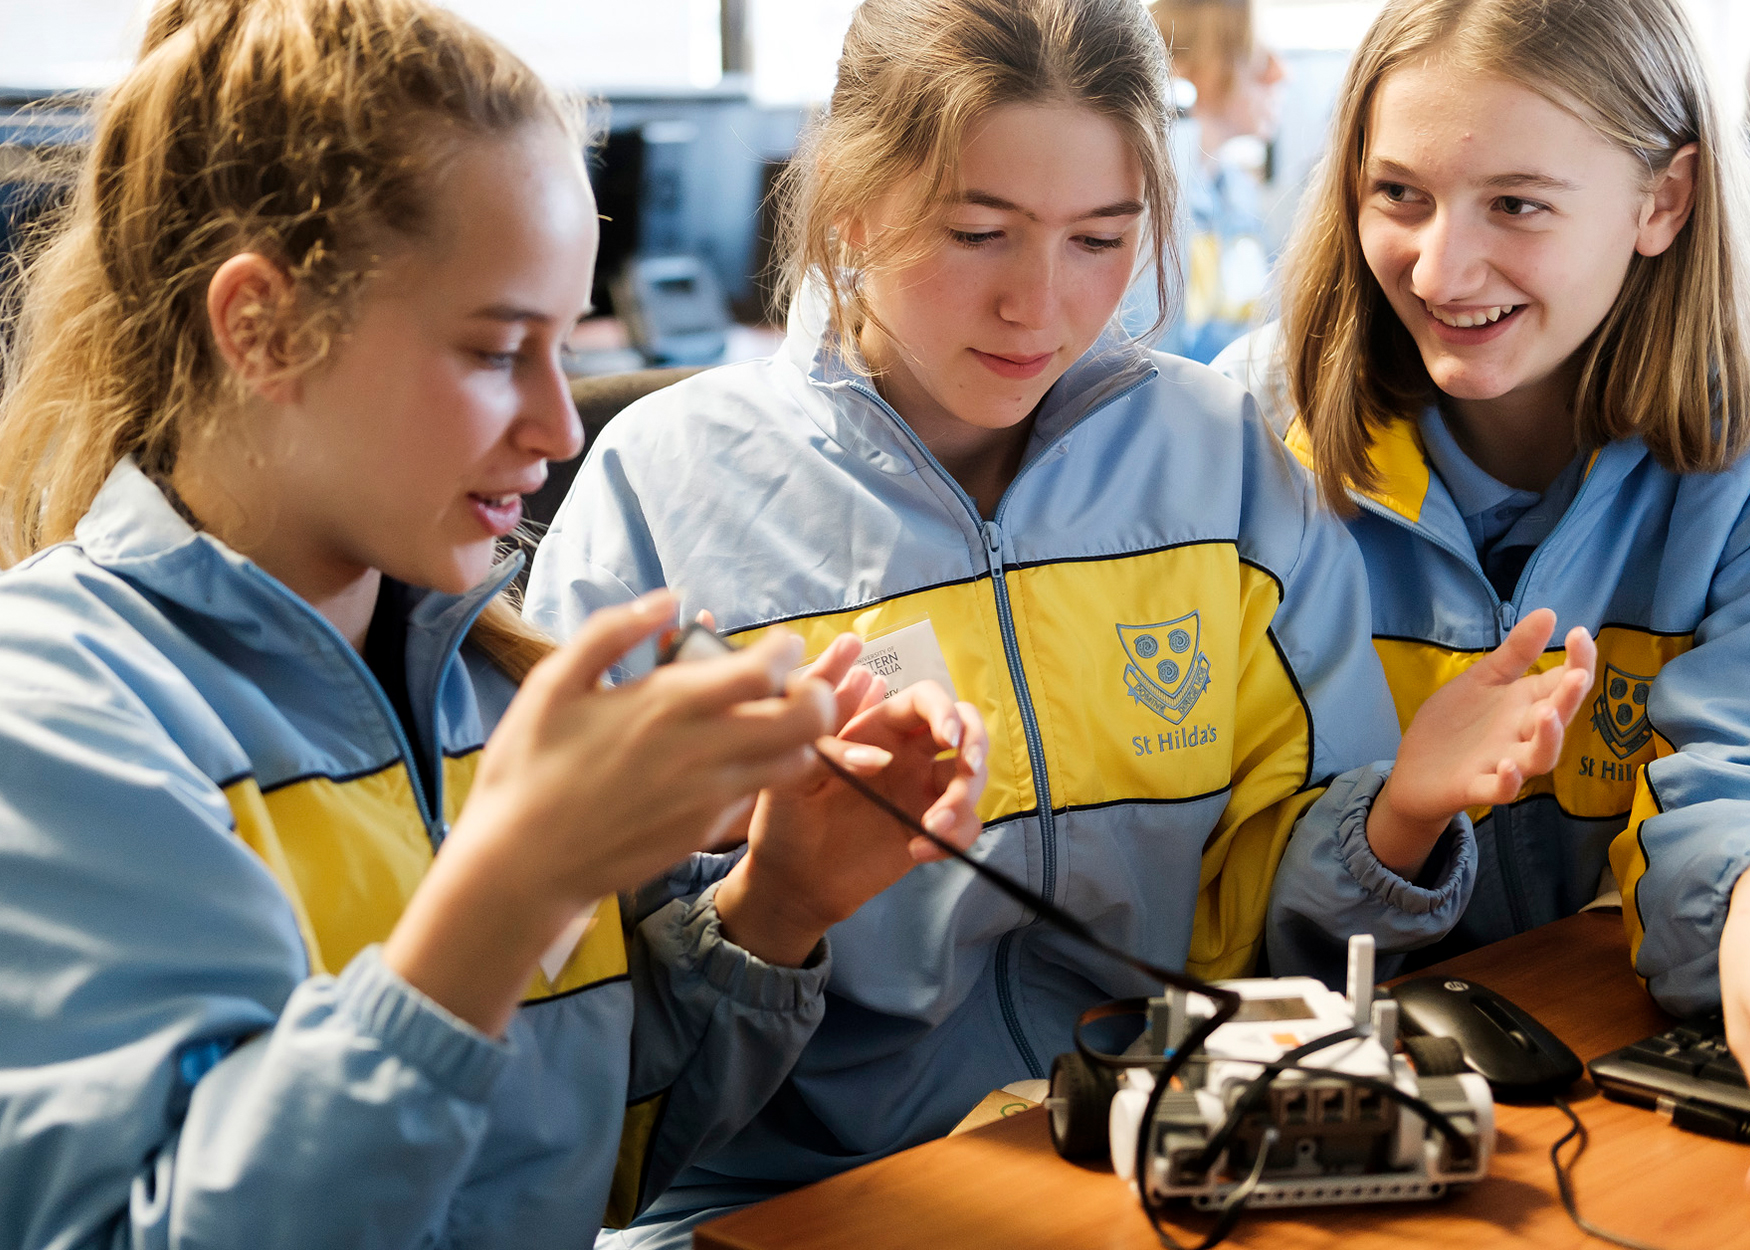 High school girls working on a robotics project